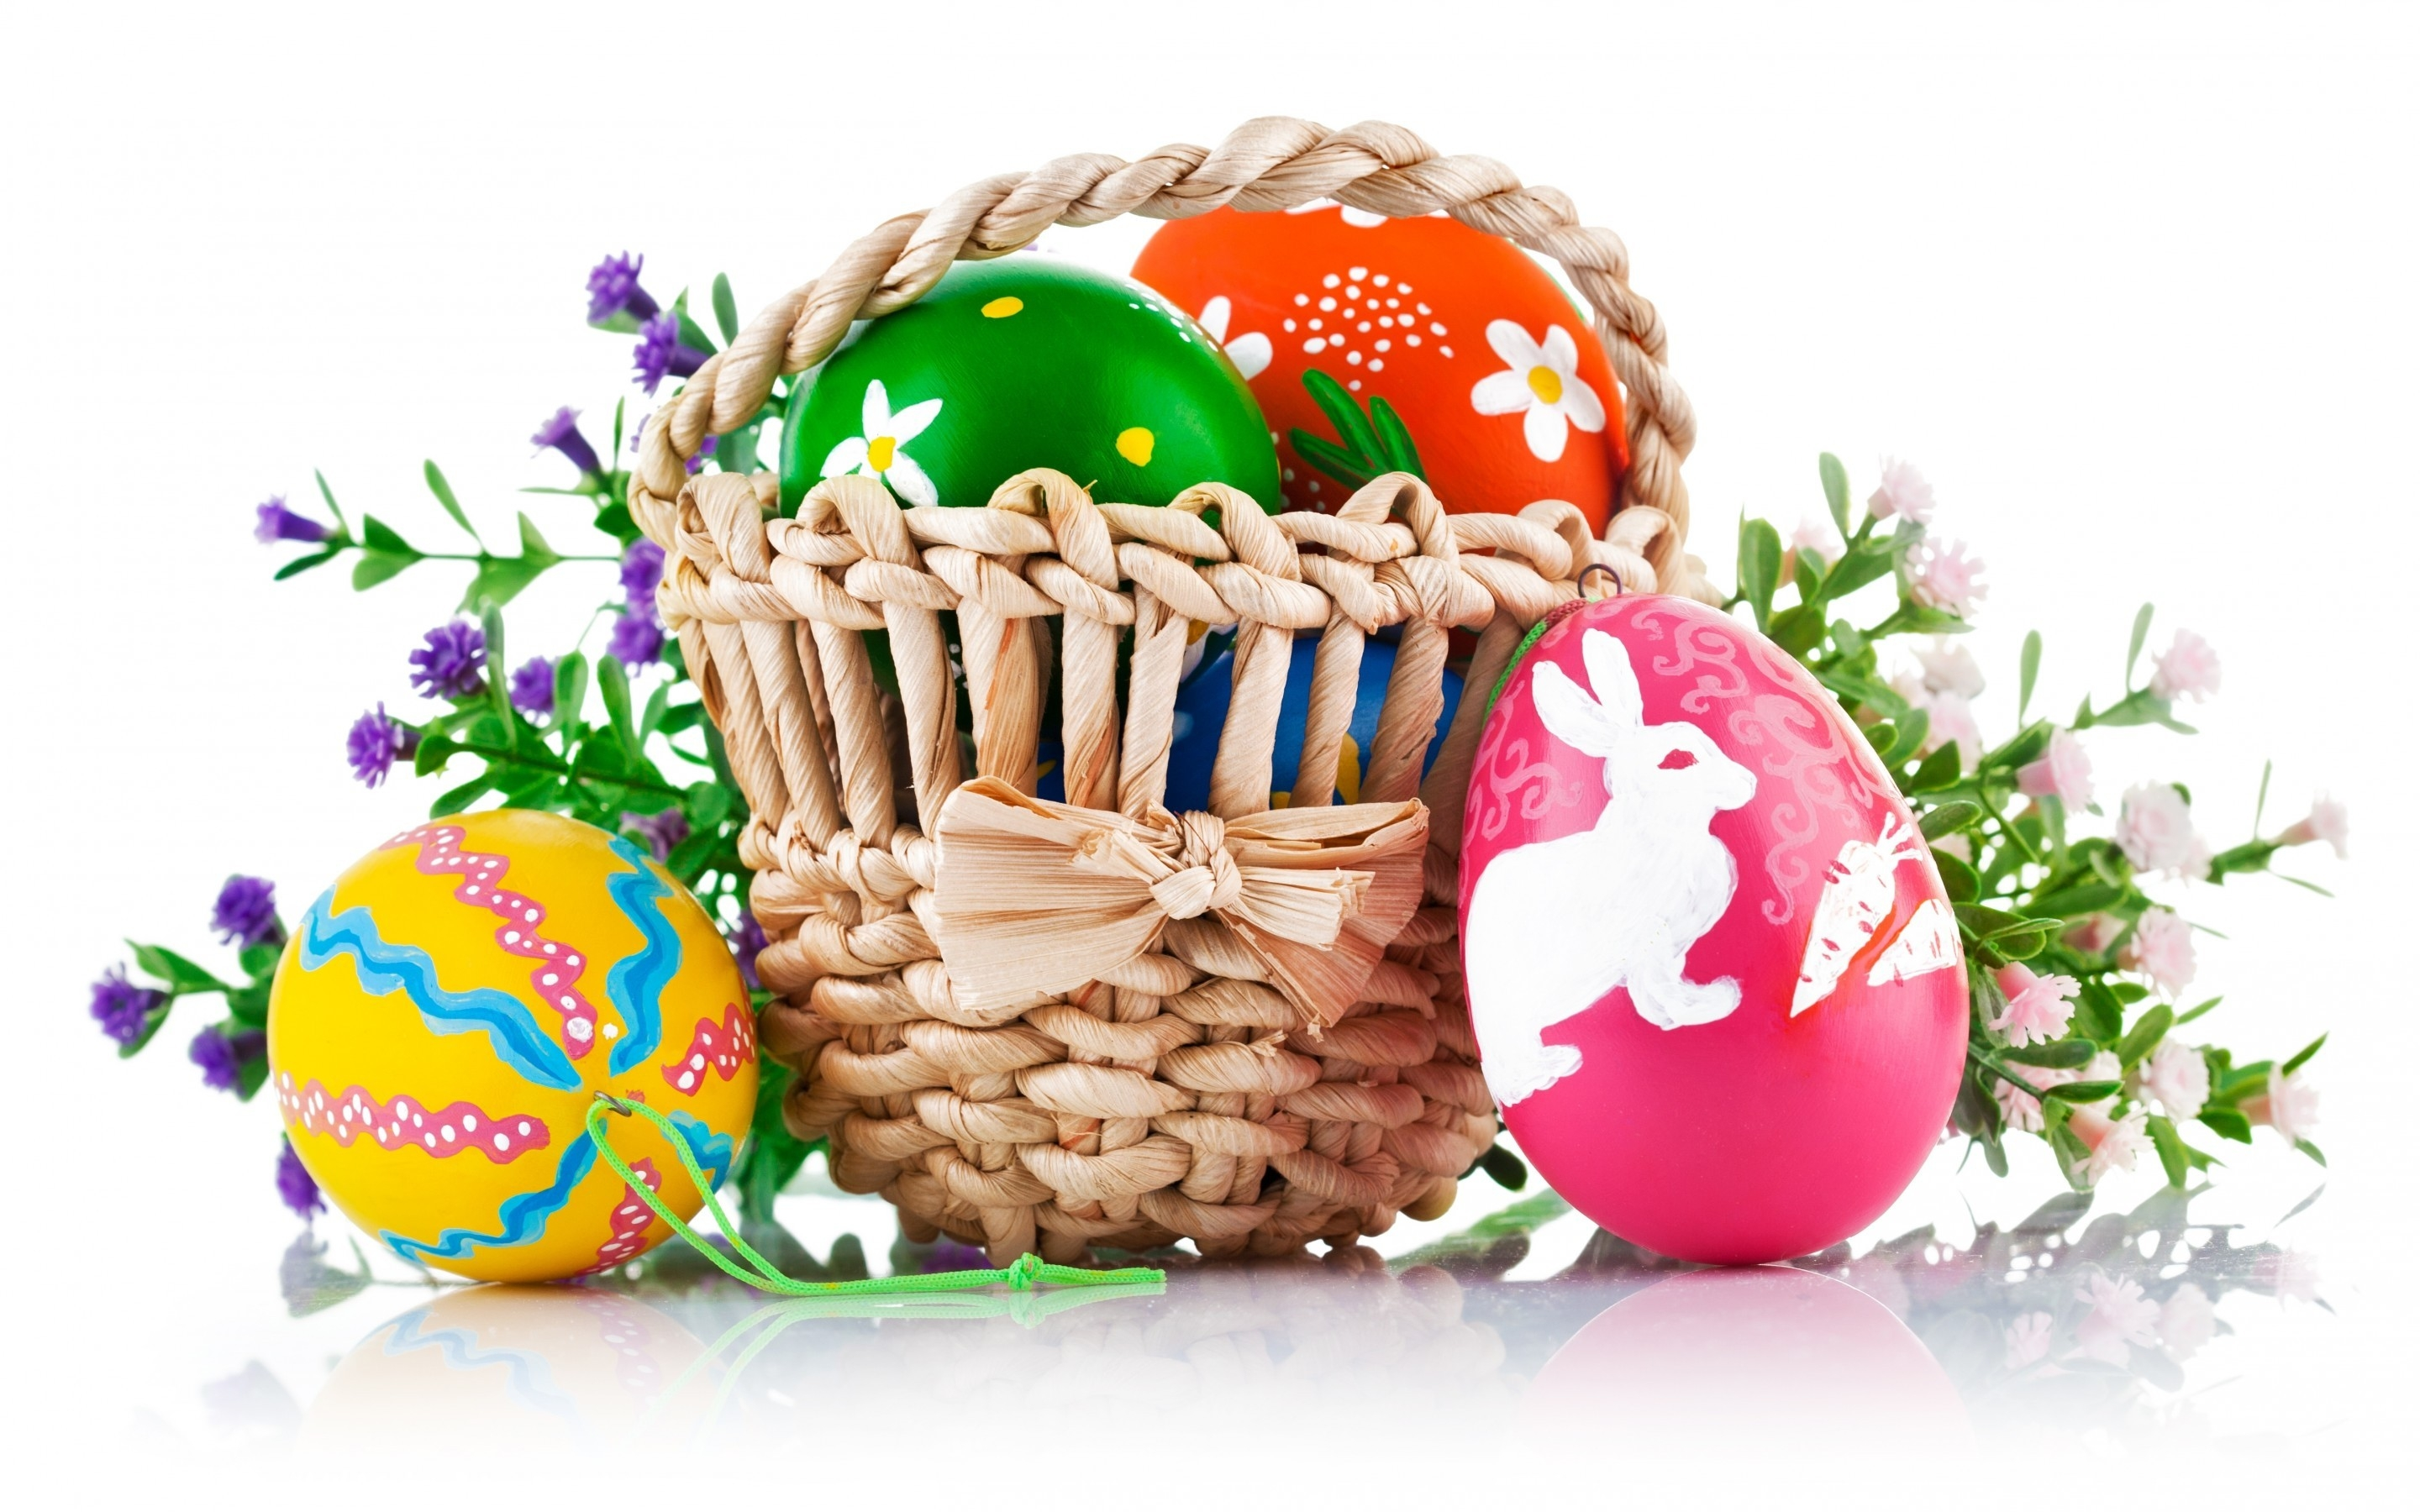 Easter Basket for 2880 x 1800 Retina Display resolution